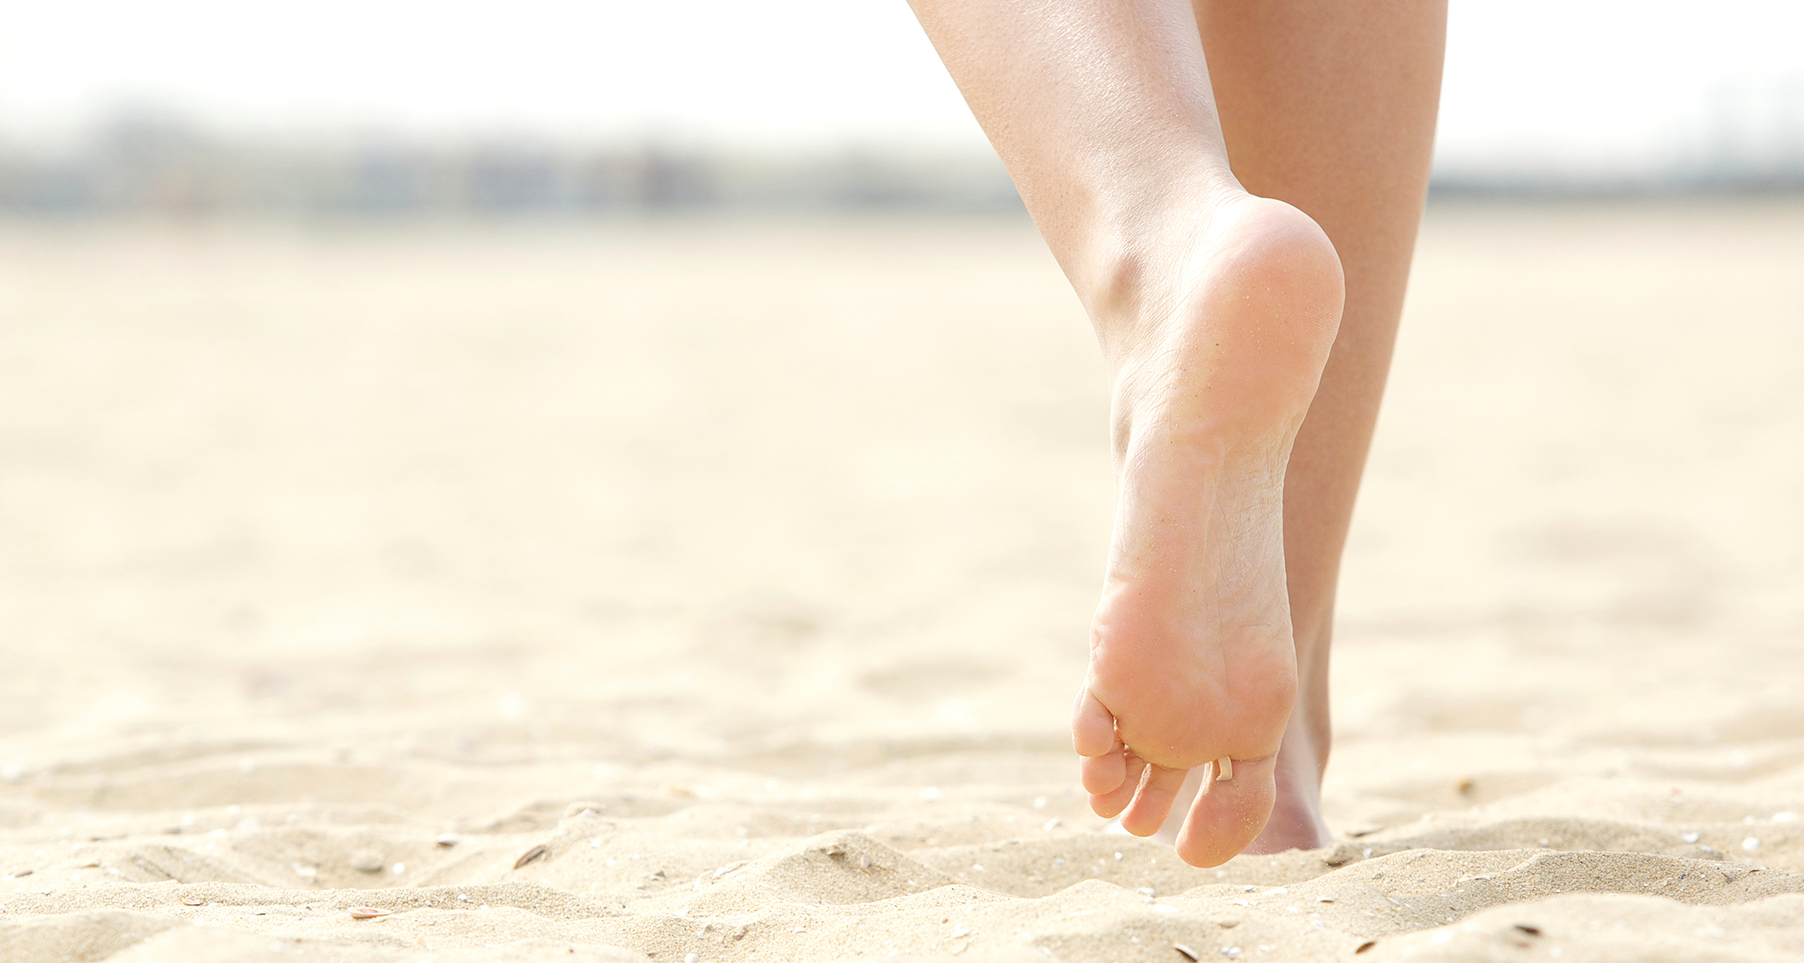 WALK AWAY FROM FOOT PROBLEMS